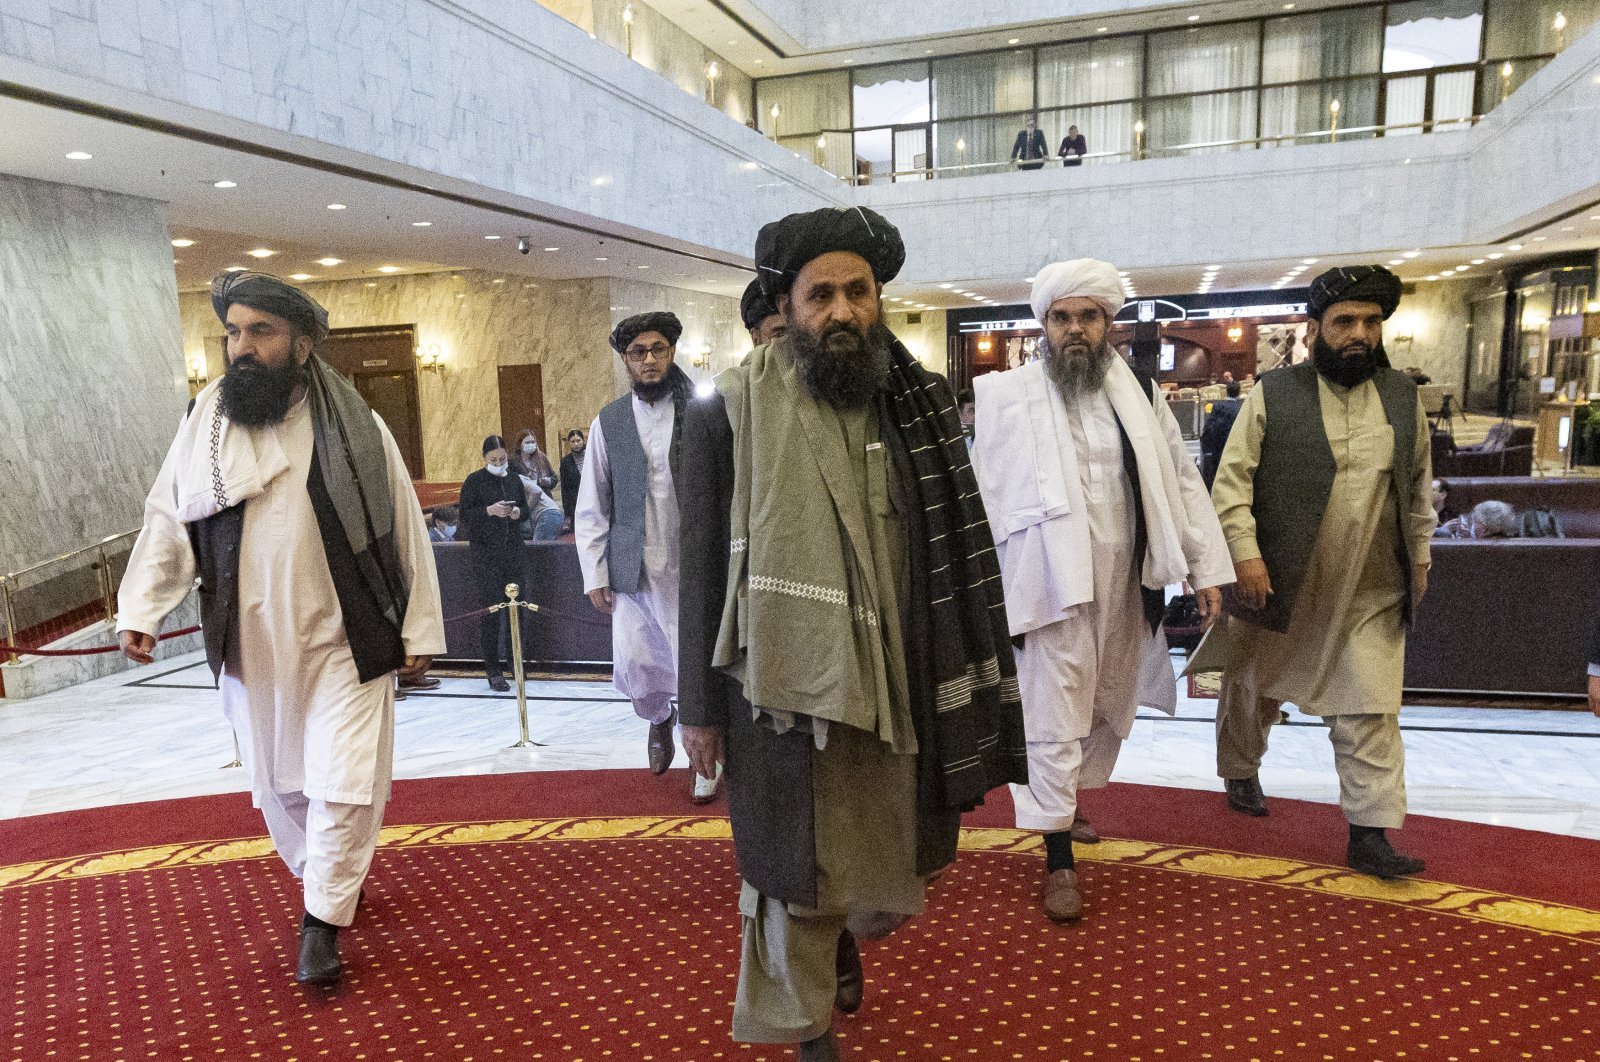 Taliban co-founder Mullah Abdul Ghani Baradar (C) arrives with other members of the Taliban delegation to attend an international peace conference in Moscow, Russia, March 18, 2021. (EPA-EFE Photo)